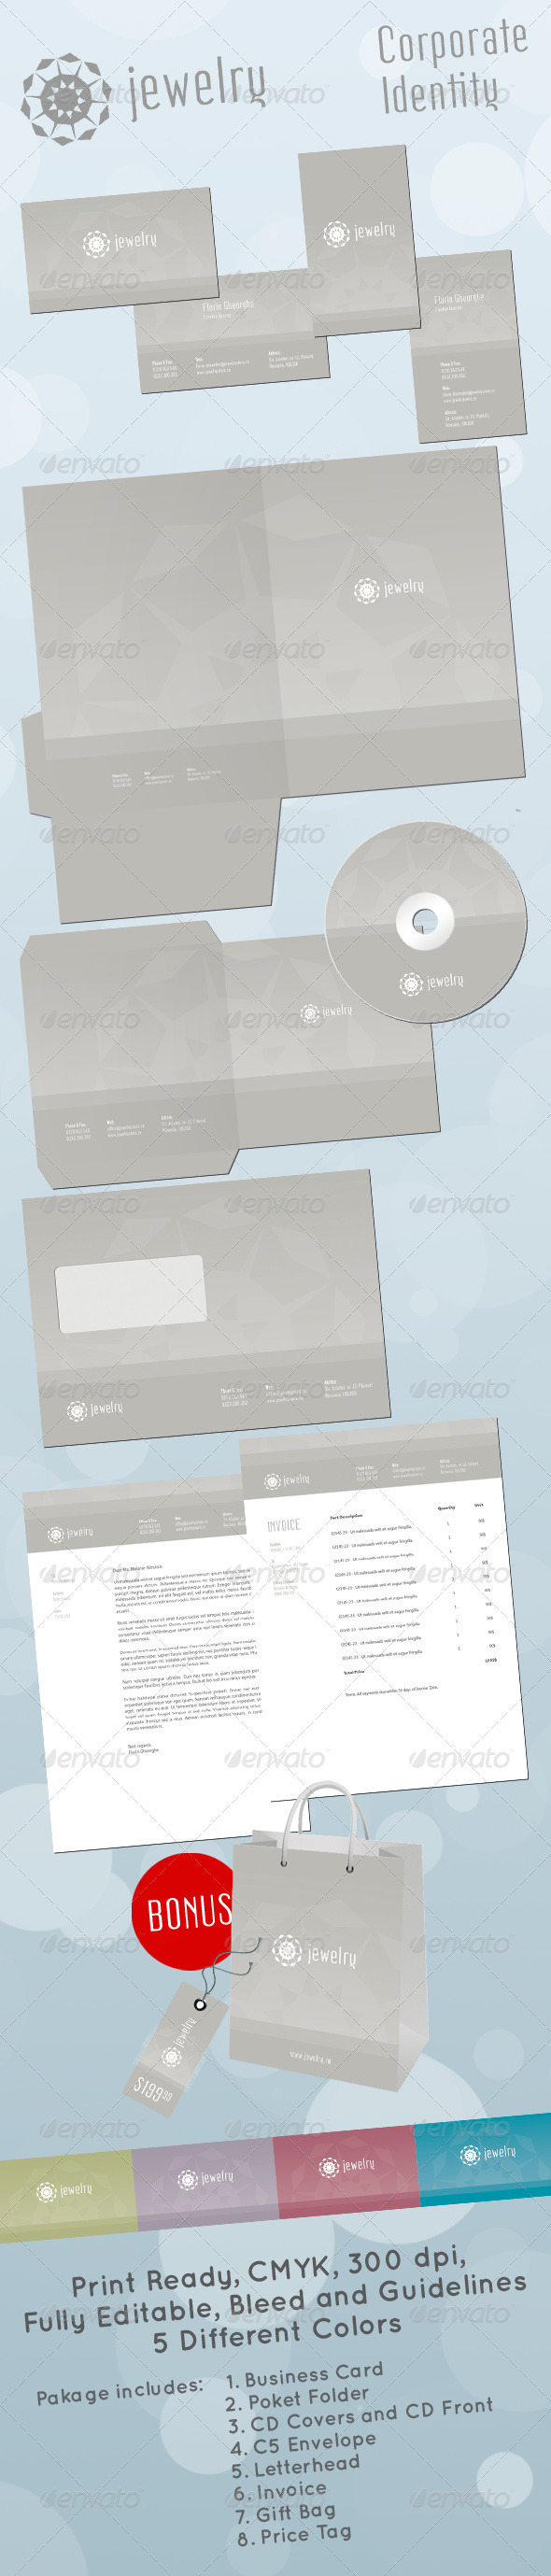 Jewelry Store Corporate Identity - Stationery Print Templates